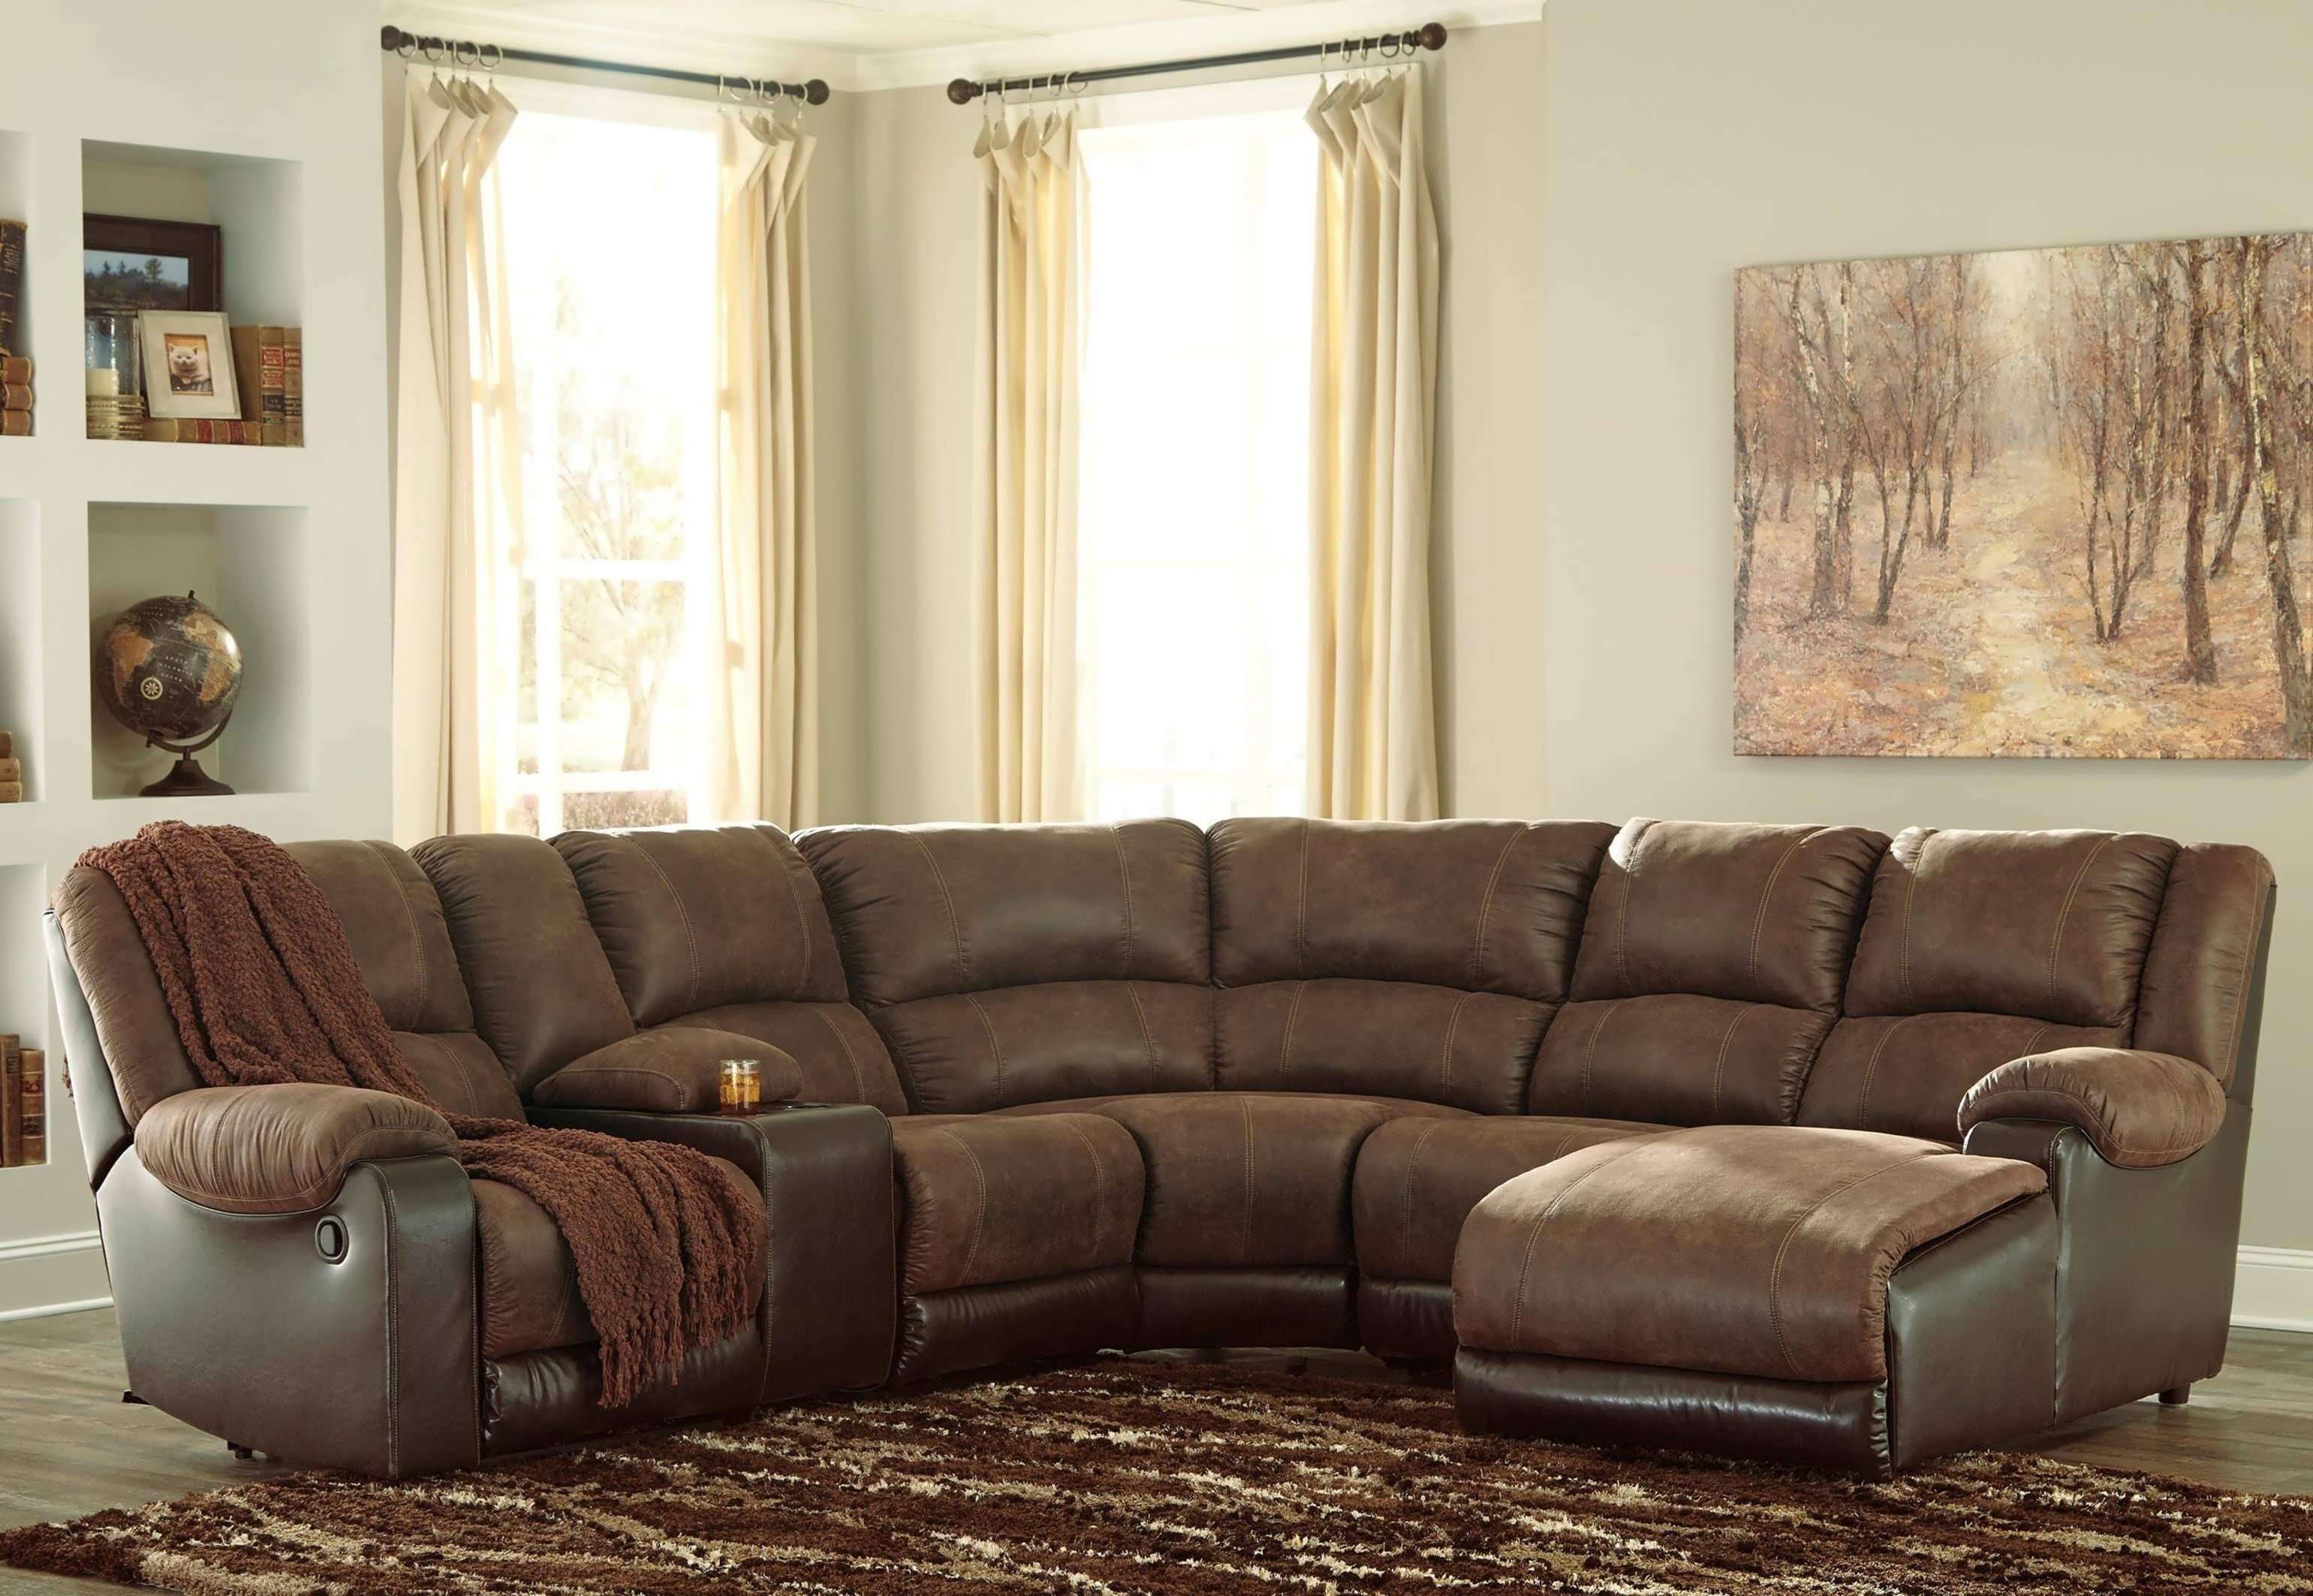 Fashionable Sofa : L Sofa Sectional With Chaise And Recliner Sectional Sofas Within Sectional Sofas With Chaise And Recliner (View 3 of 15)